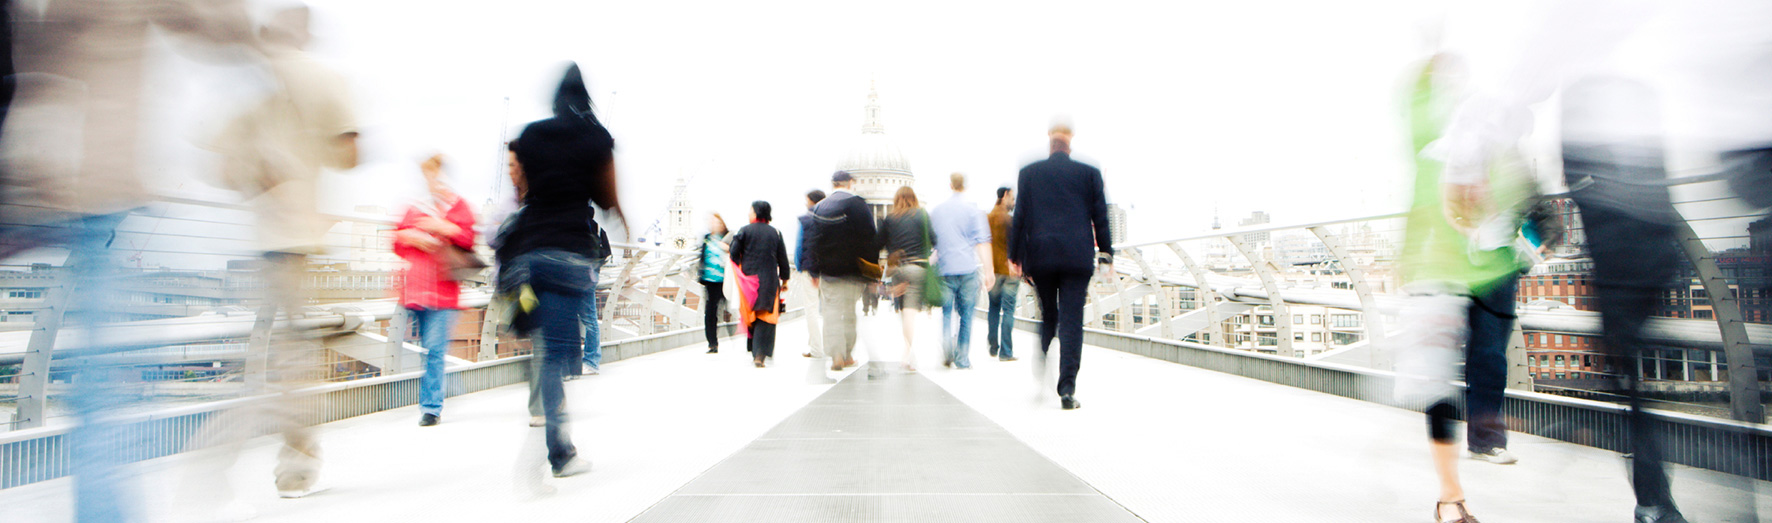 Research, Doctoral College, case studies, student and alumni profiles, people walking, blurred, bridge